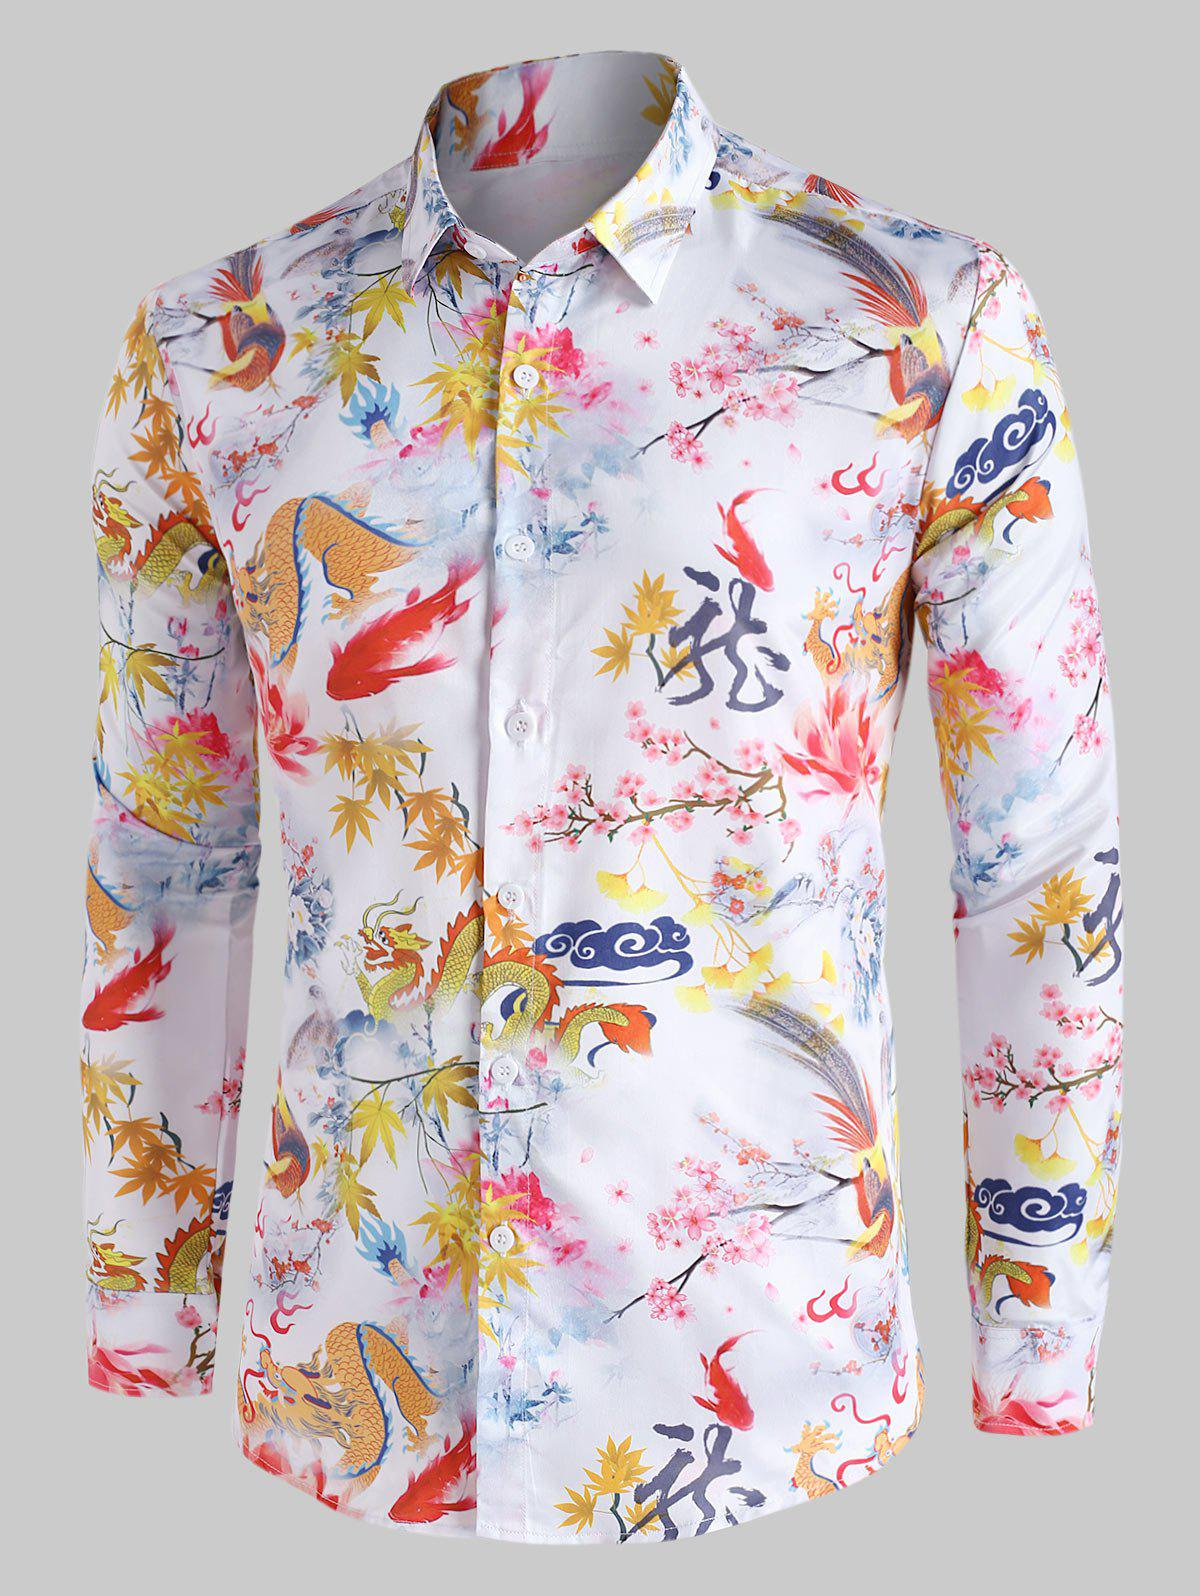 Fancy Chinese Dragon Floral Painting Vintage Button Up Shirt